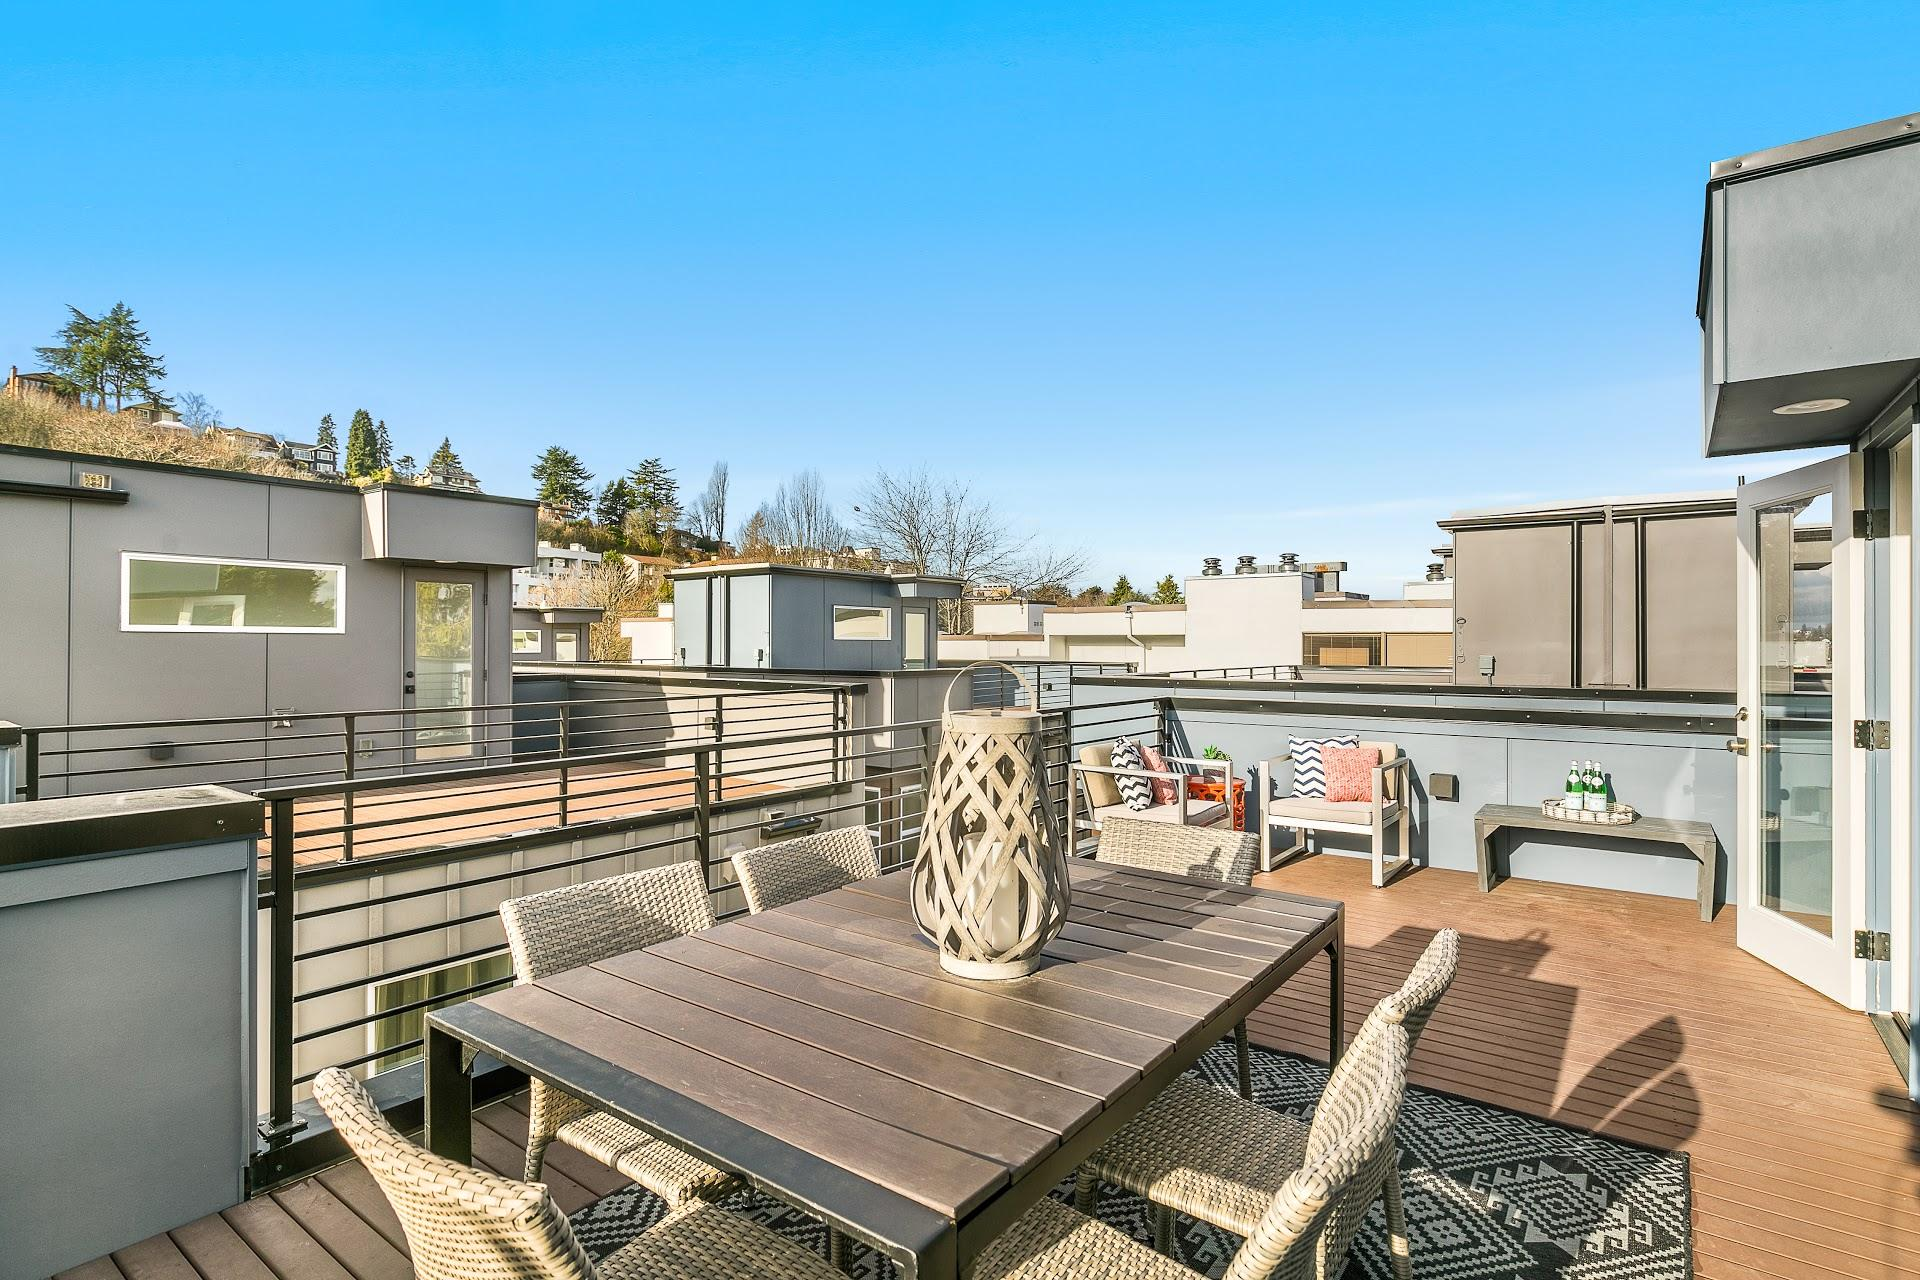 South Lake Union | Roof Deck | Blackwood Builders Group